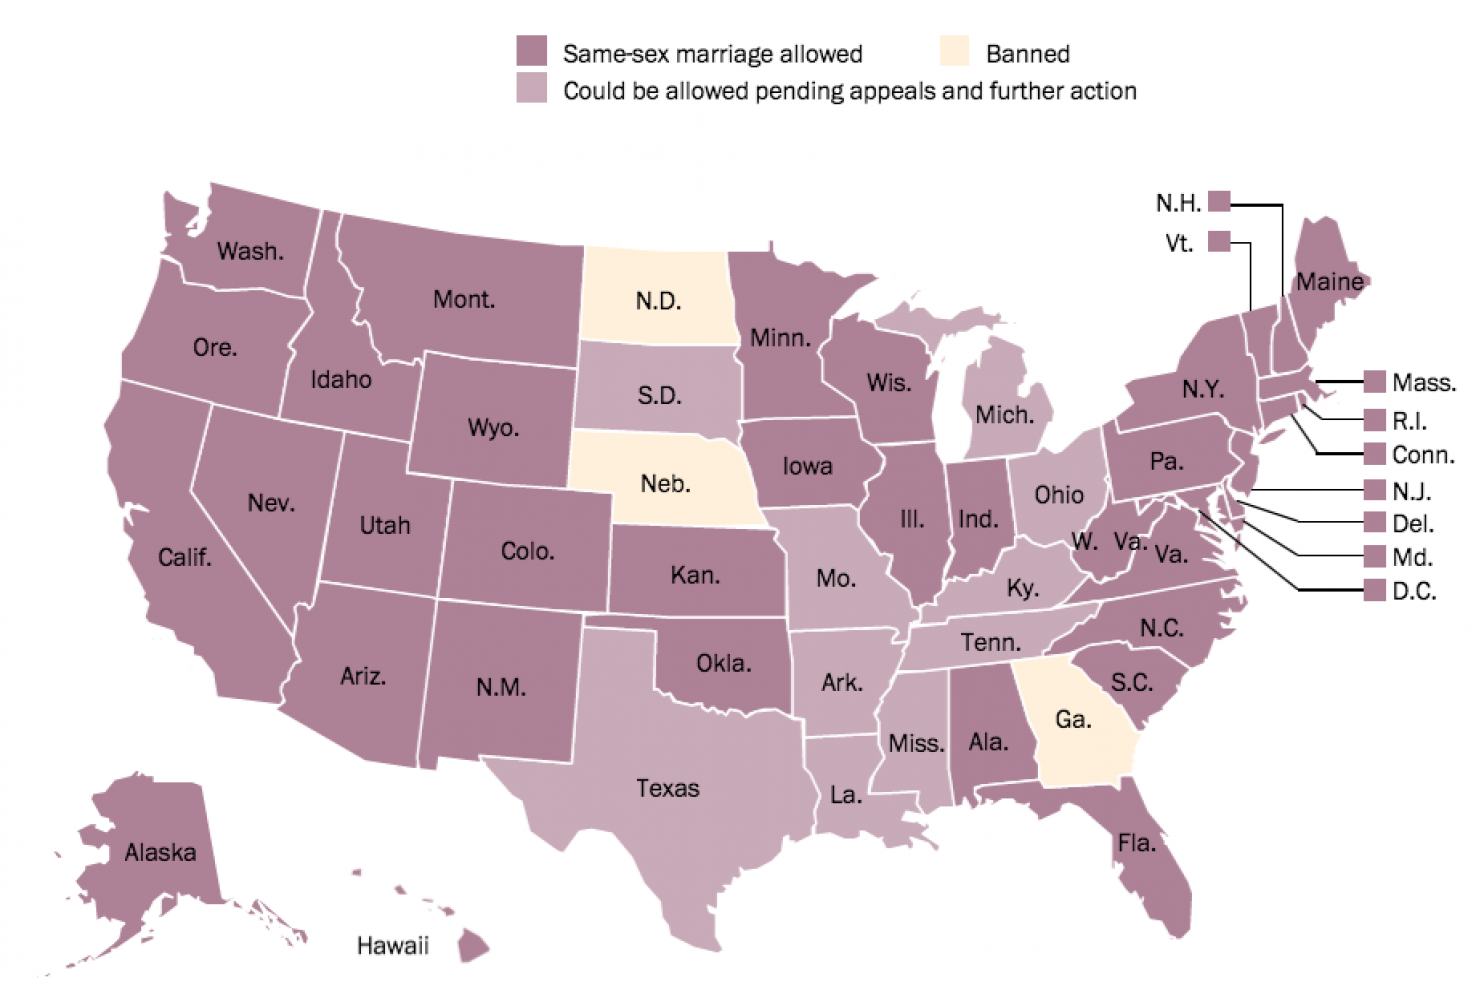 Which states legal same sex marriage